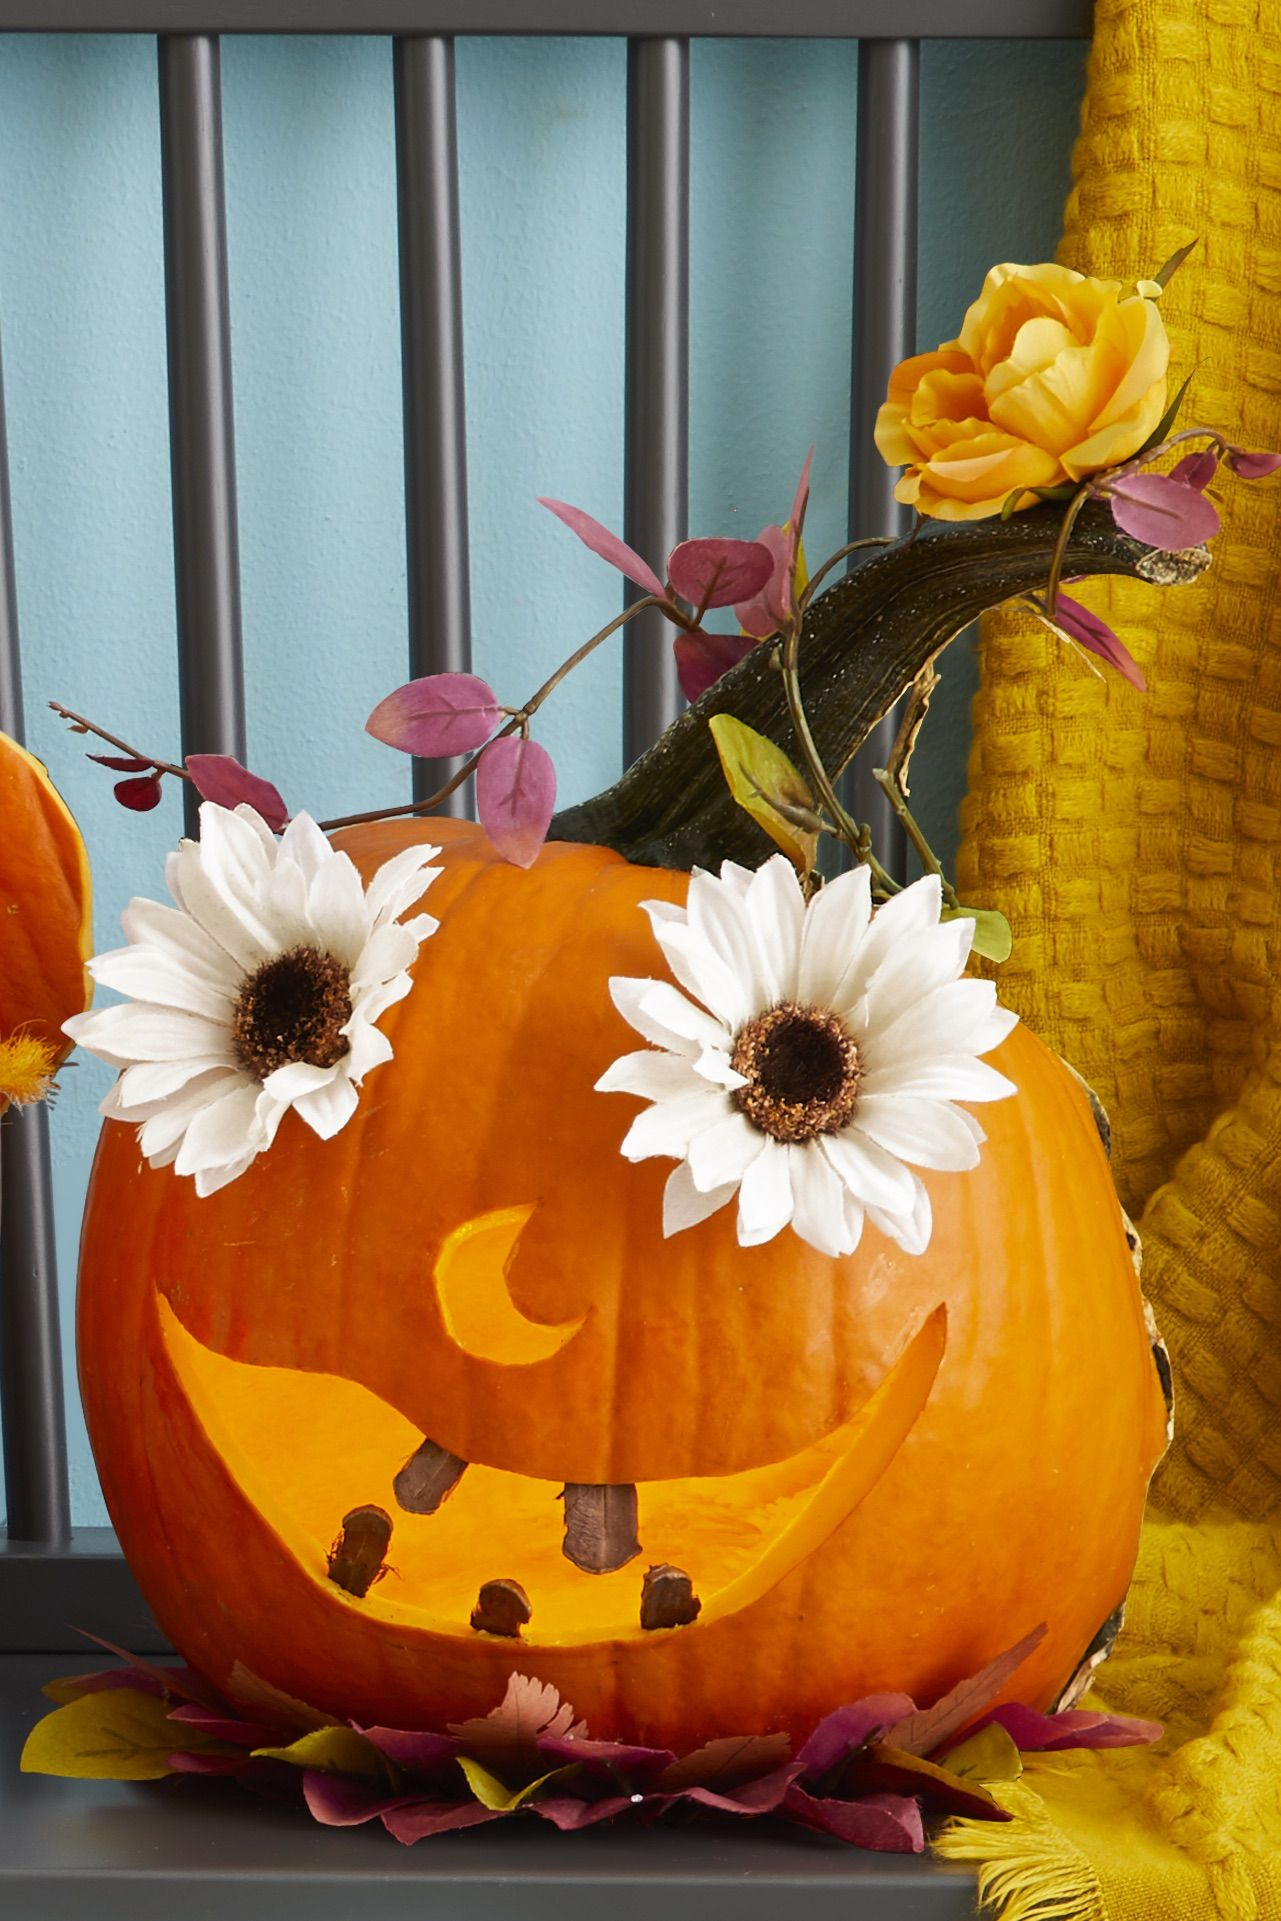 69 Pumpkin Carving Ideas For Halloween 2020 Creative Jack O Lantern Designs